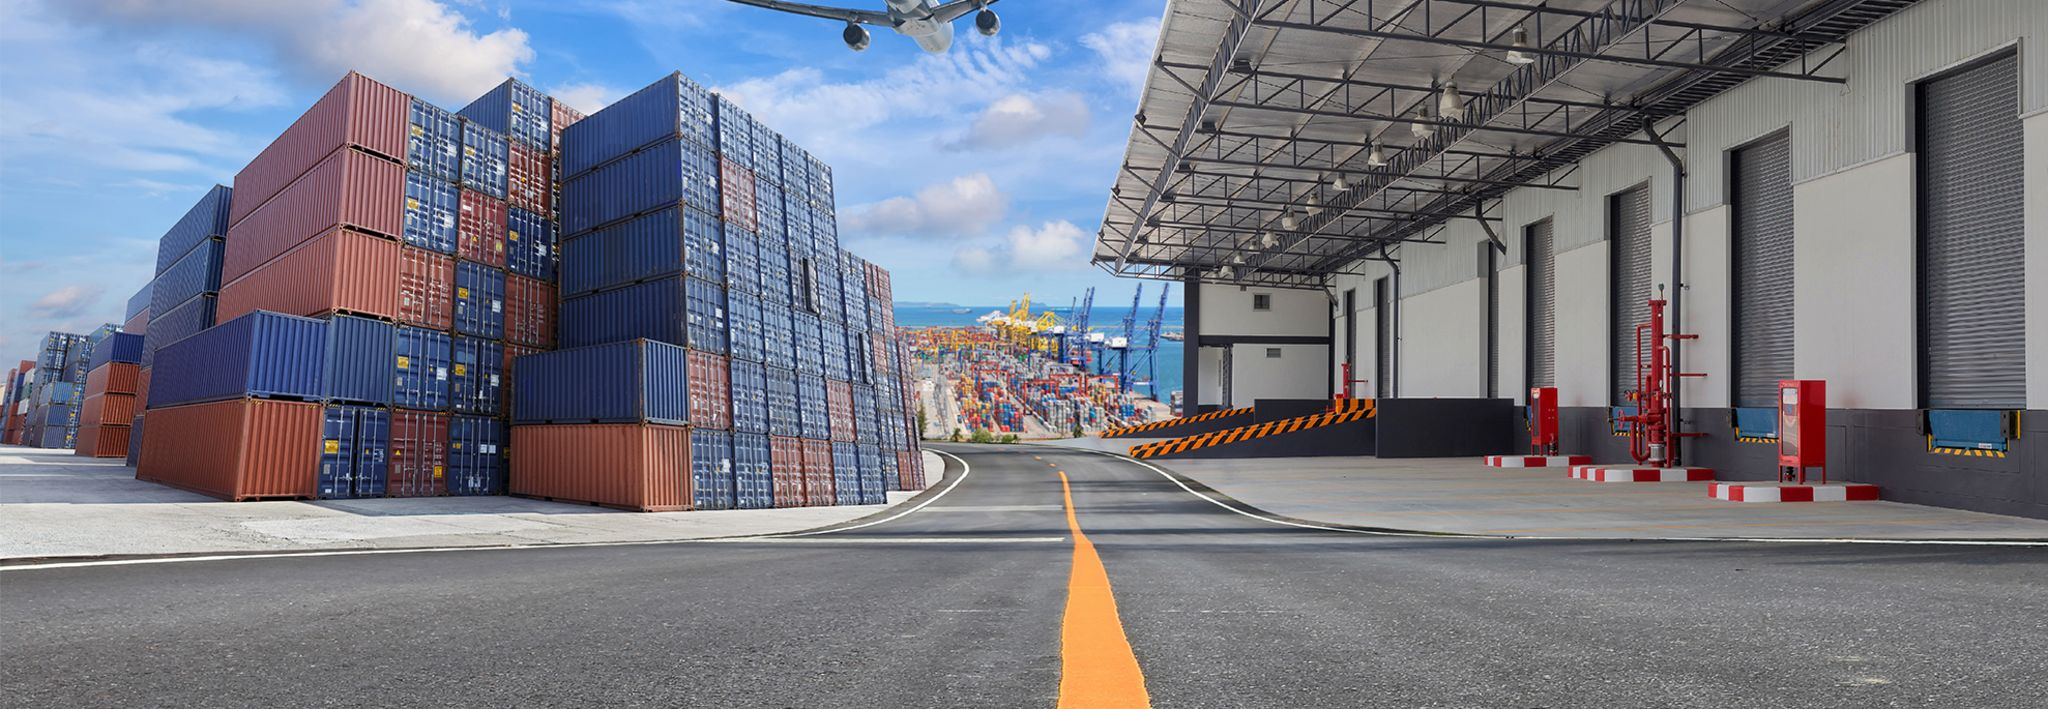 A supply chain facility has a warehouse, shipping containers, and a distribution center.